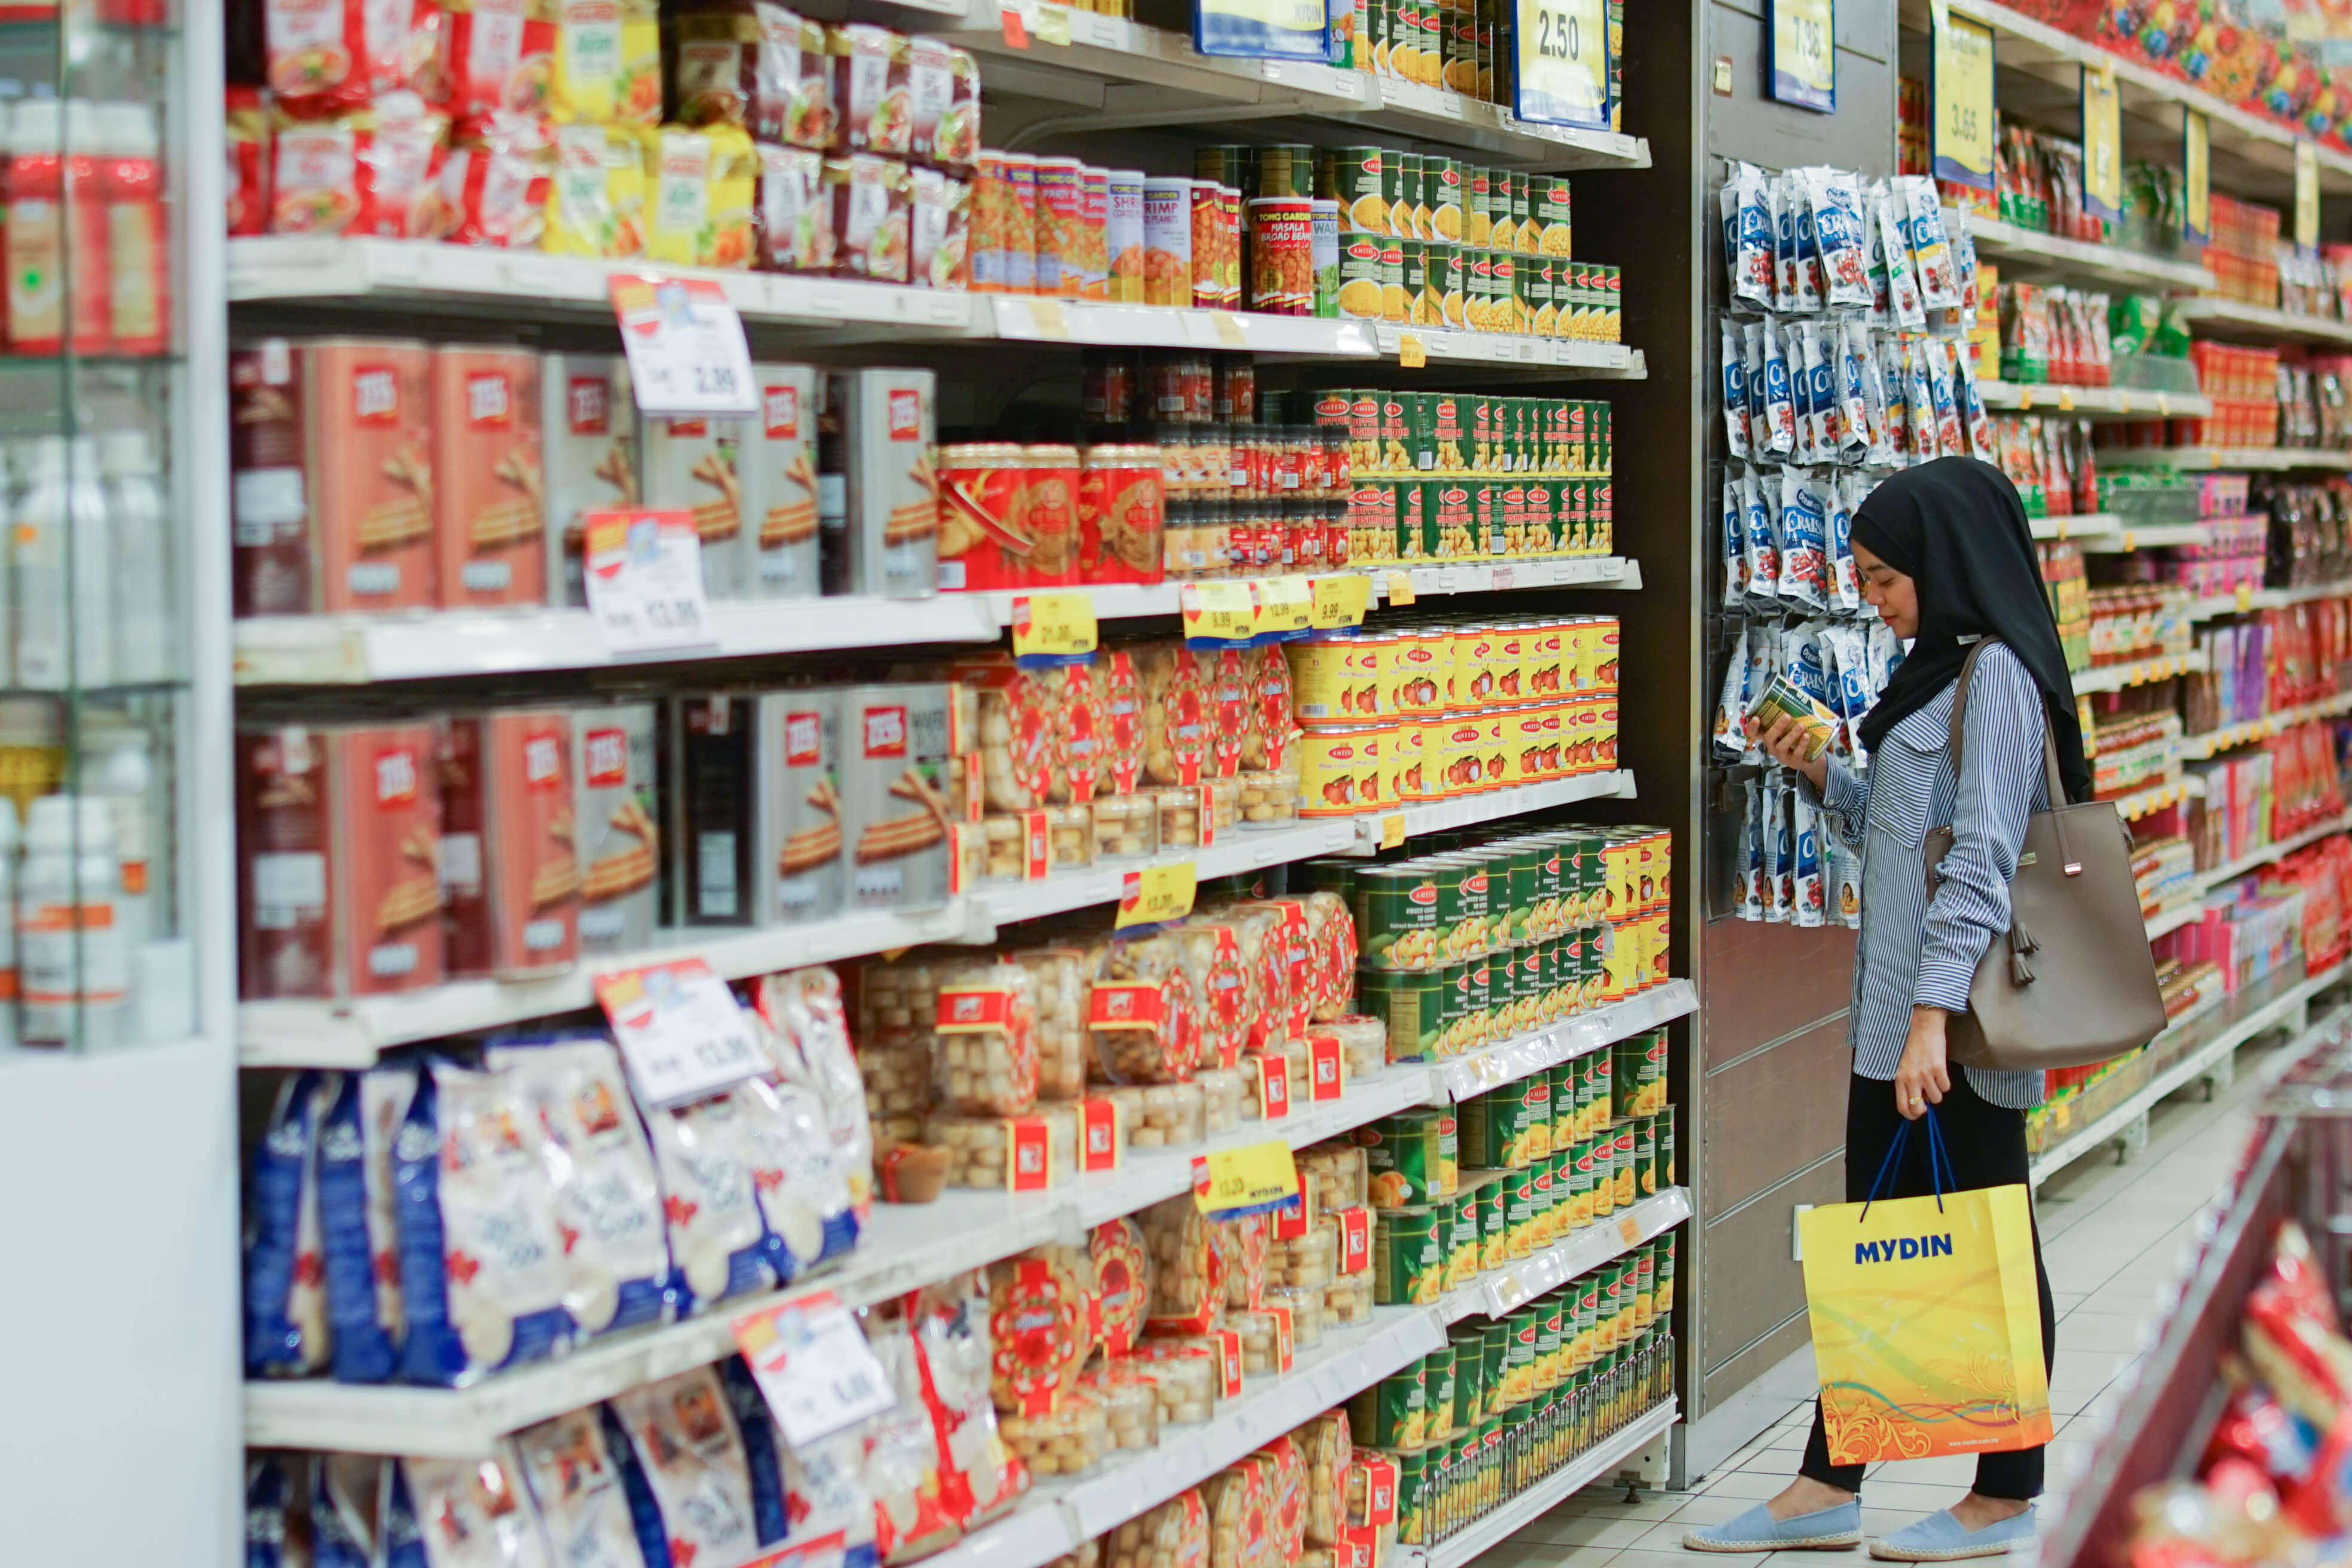 Here are some tips on how to grocery shop during this partial lockdown